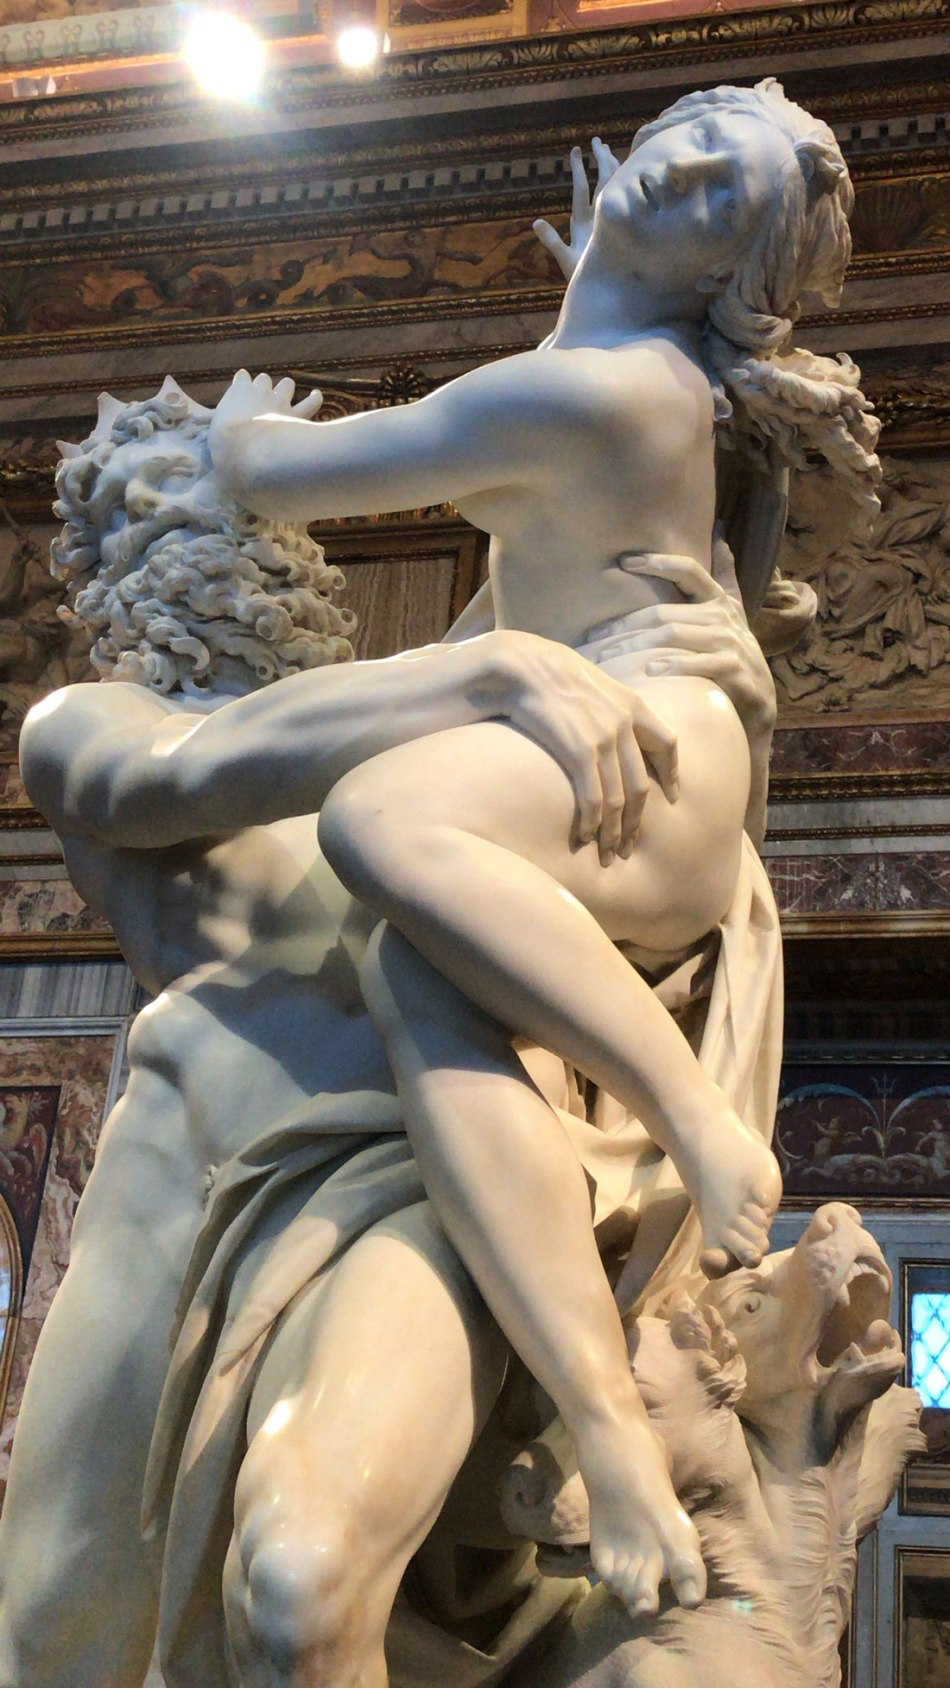 Rape-of-Proserpina-Sculpture-by-GianLorenzo-Bernini